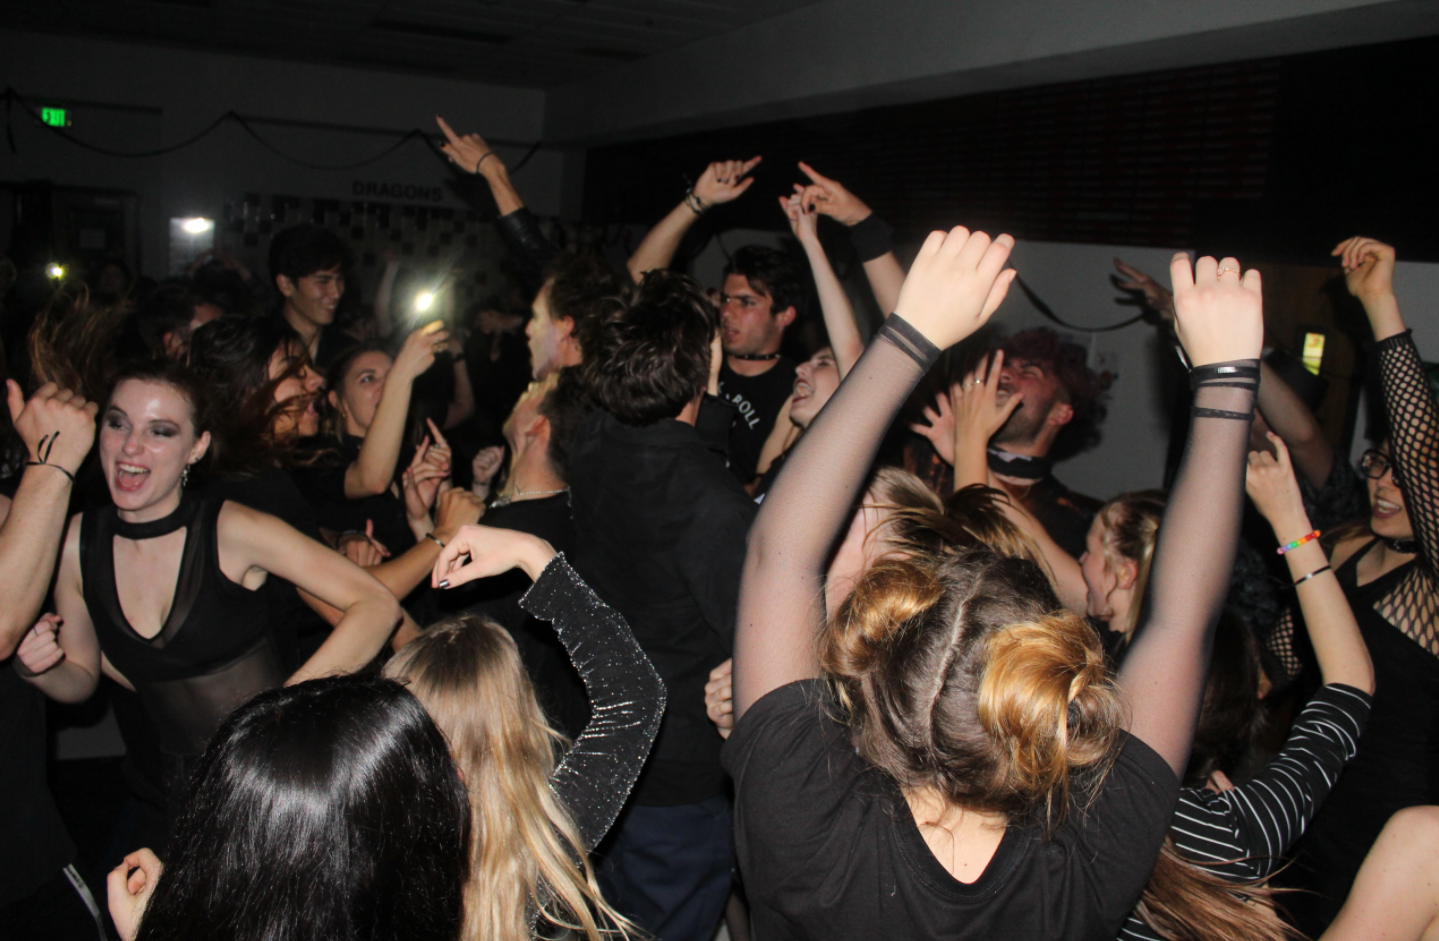 Students embrace their dark side at Blackout Dance